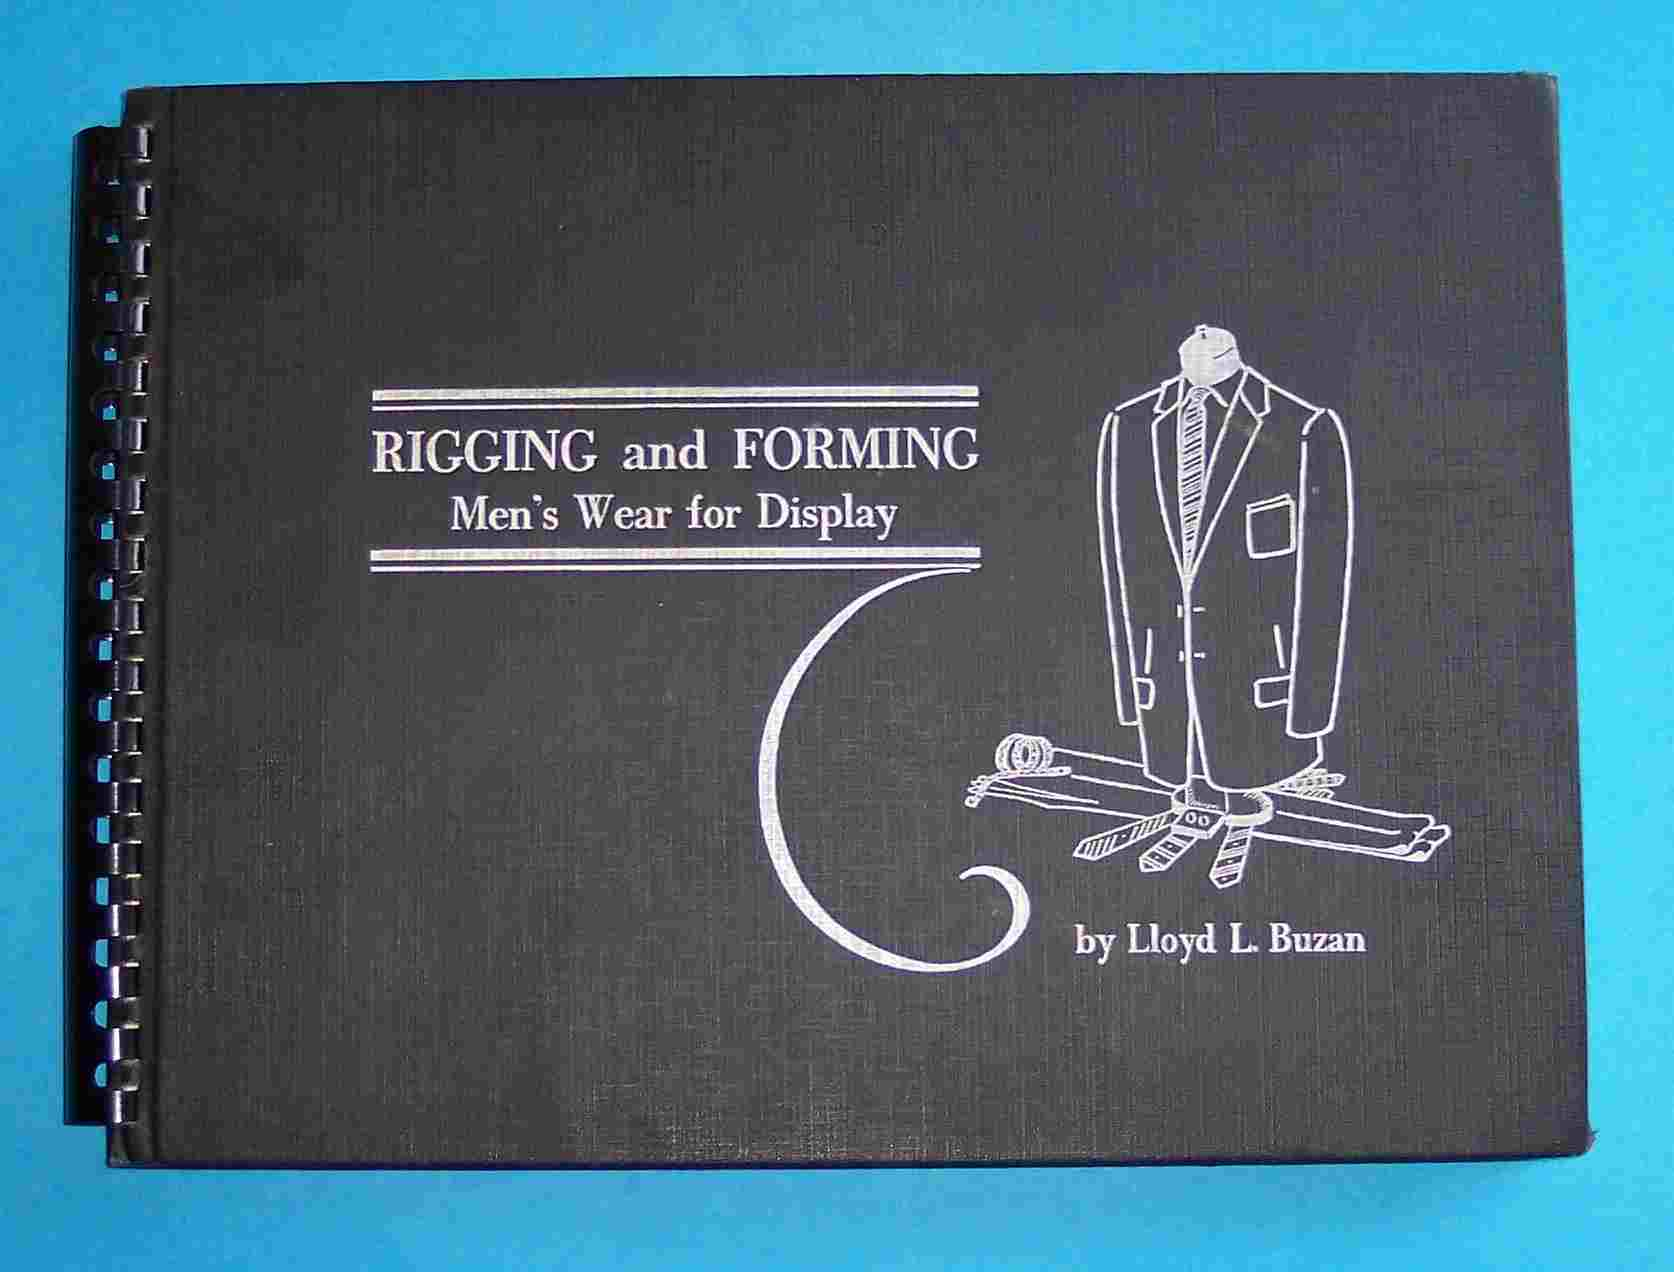 Rigging and Forming Men's Wear for Display Buzan, Lloyd L. [ ] [Hardcover] 106 pp. Photos. Spine, corners bumped. Plastic comb binding. A complete guide to attractively displaying men's clothing for sale. Heavy book. ; Oblong 4to 11  - 13  tall Very Good with No dust jacket as issued